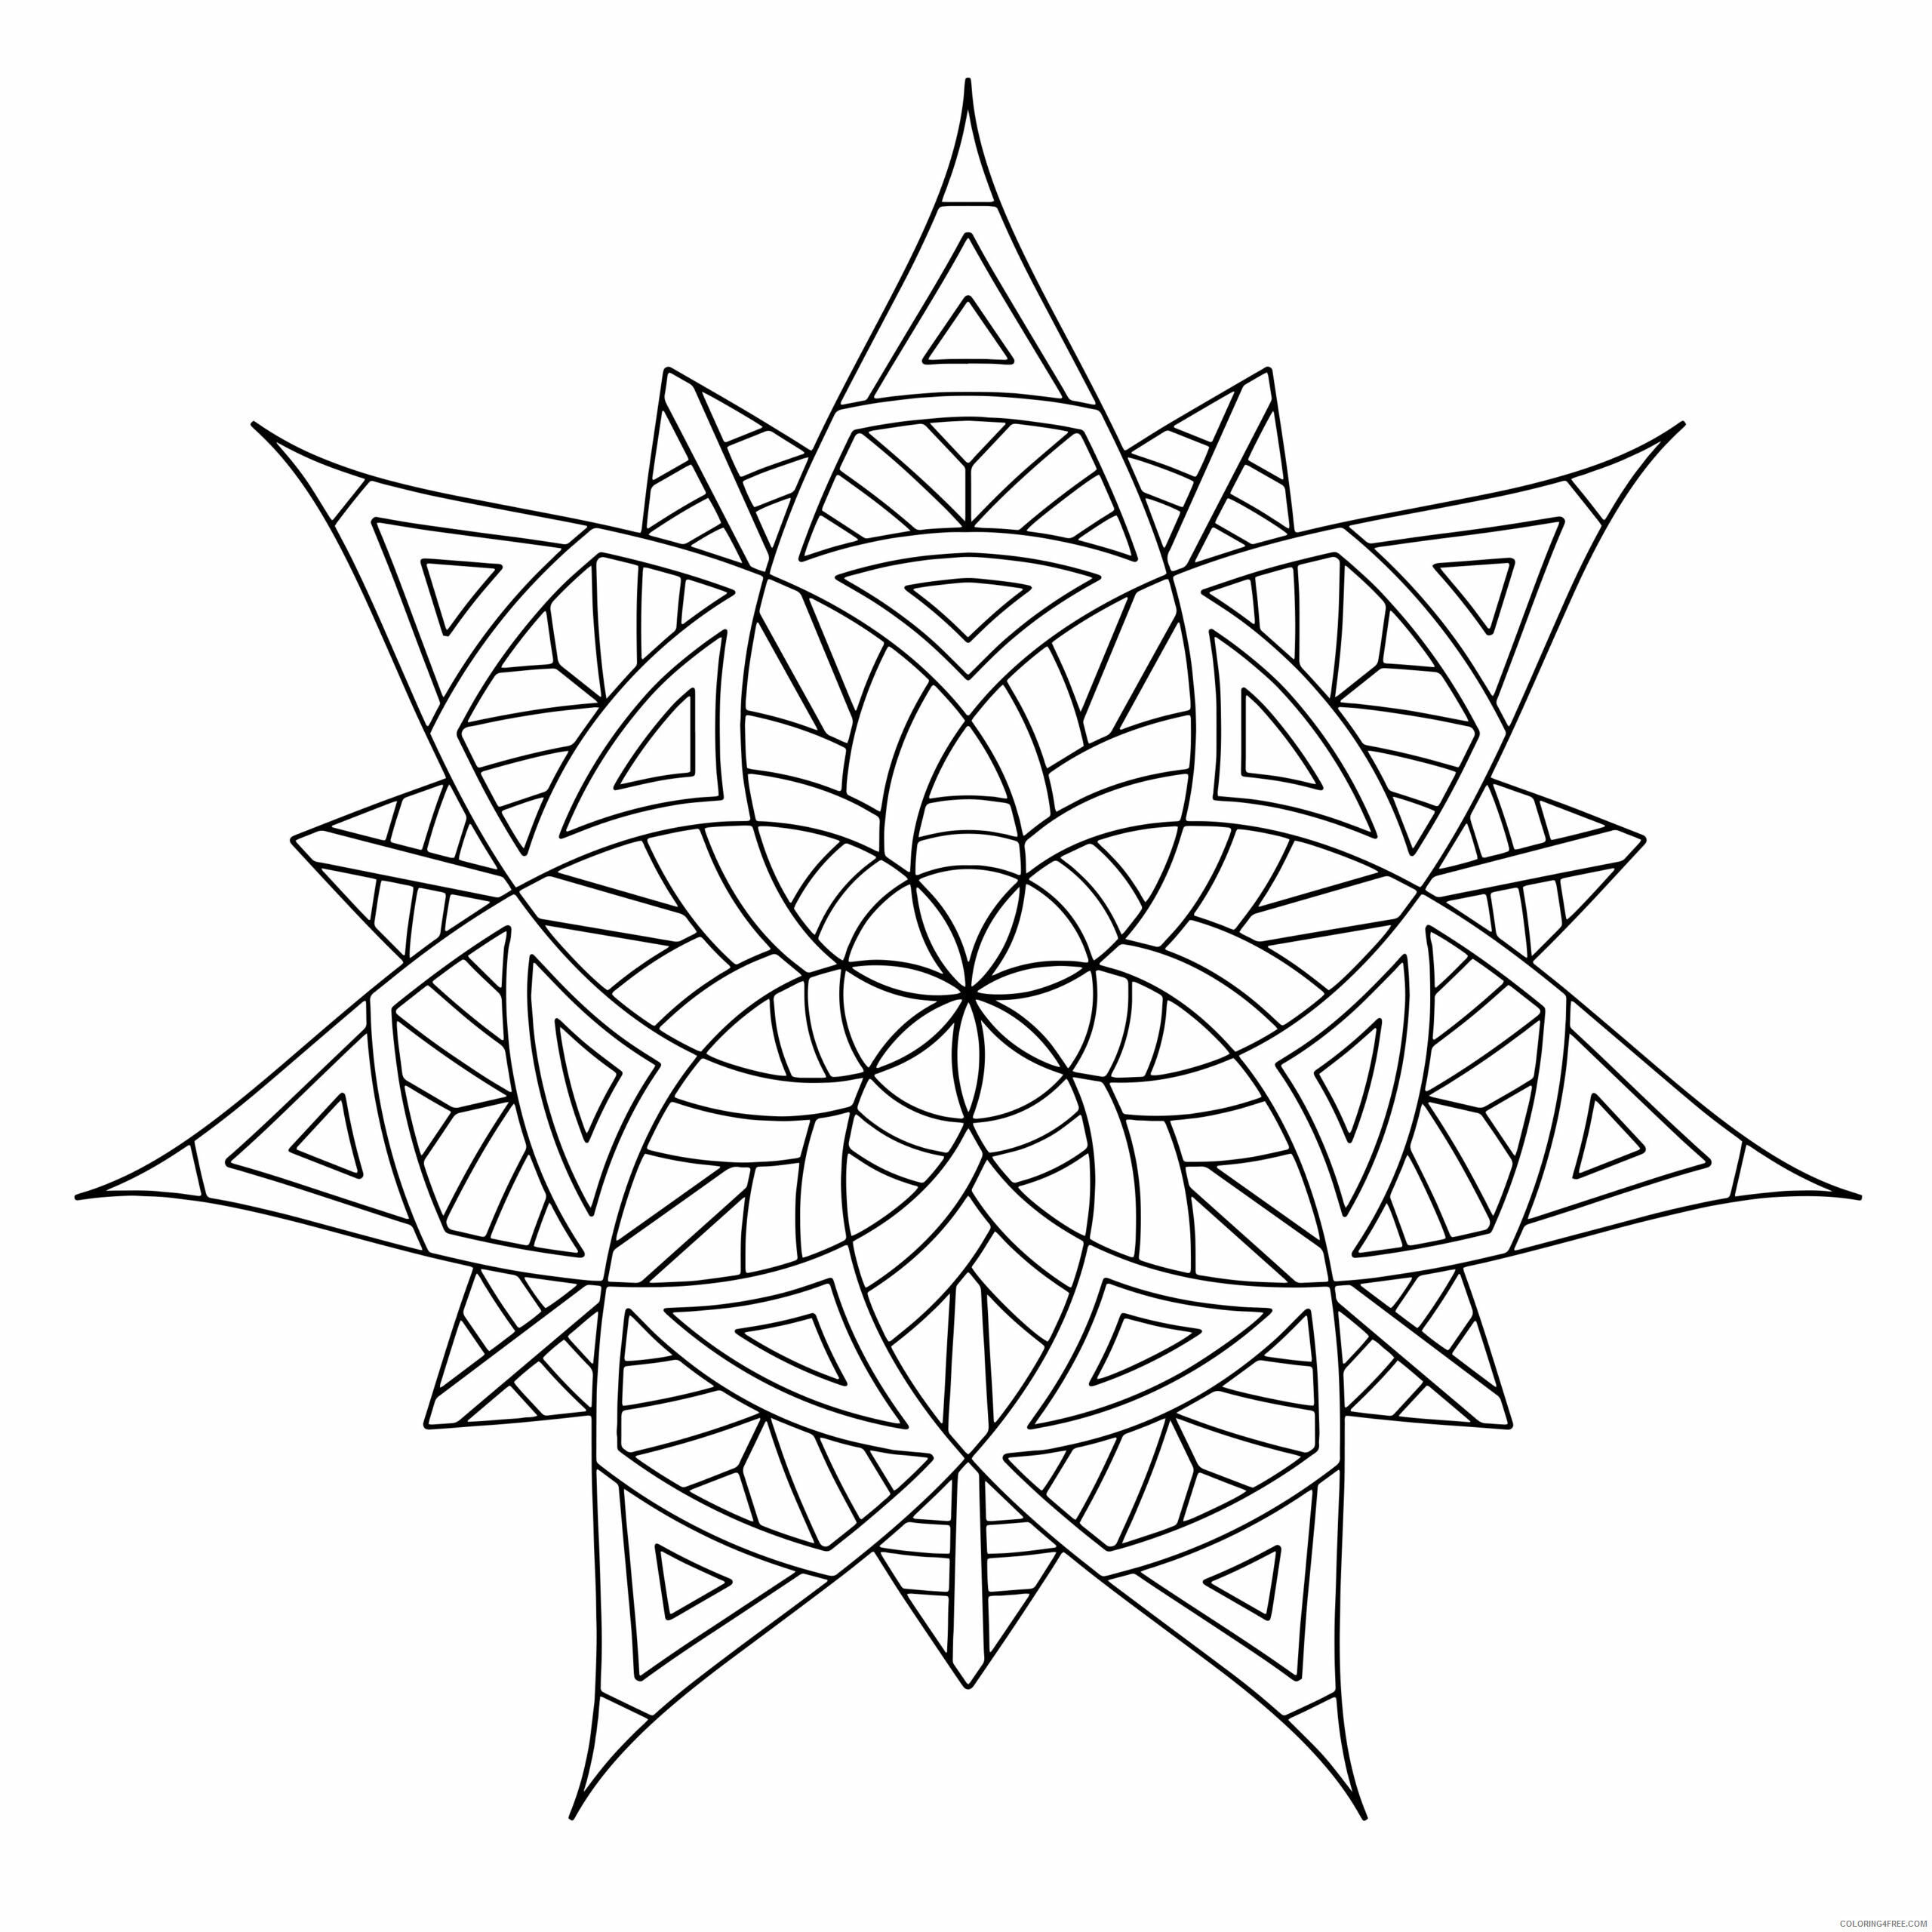 Geometric Design Coloring Pages Adult free geometric Printable 2020 416 Coloring4free